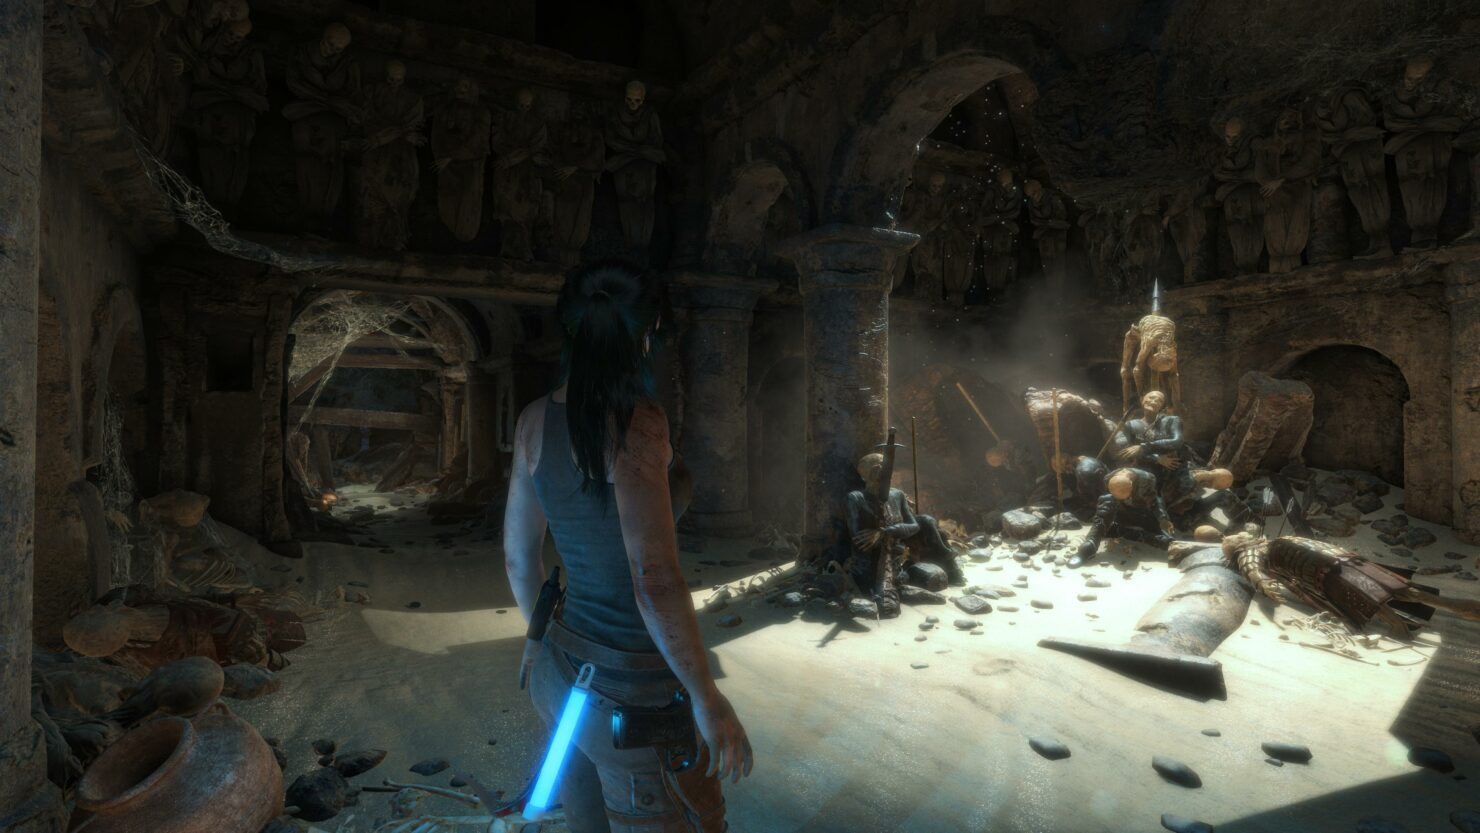 rise-of-the-tomb-raider_pc_4k_pcmr_49